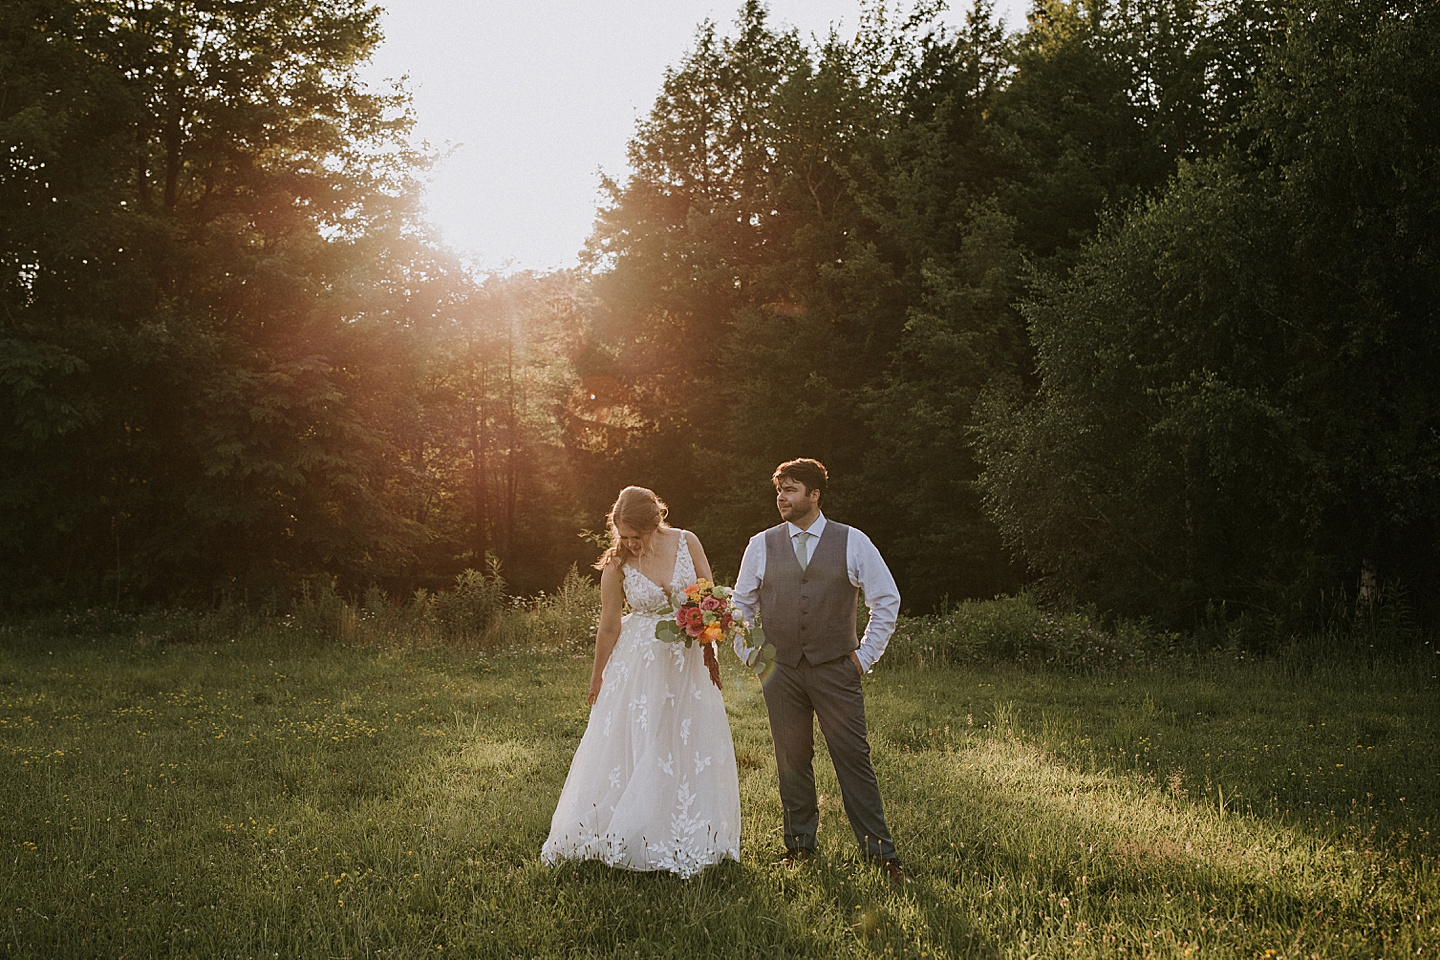 Bride and groom standing in grass